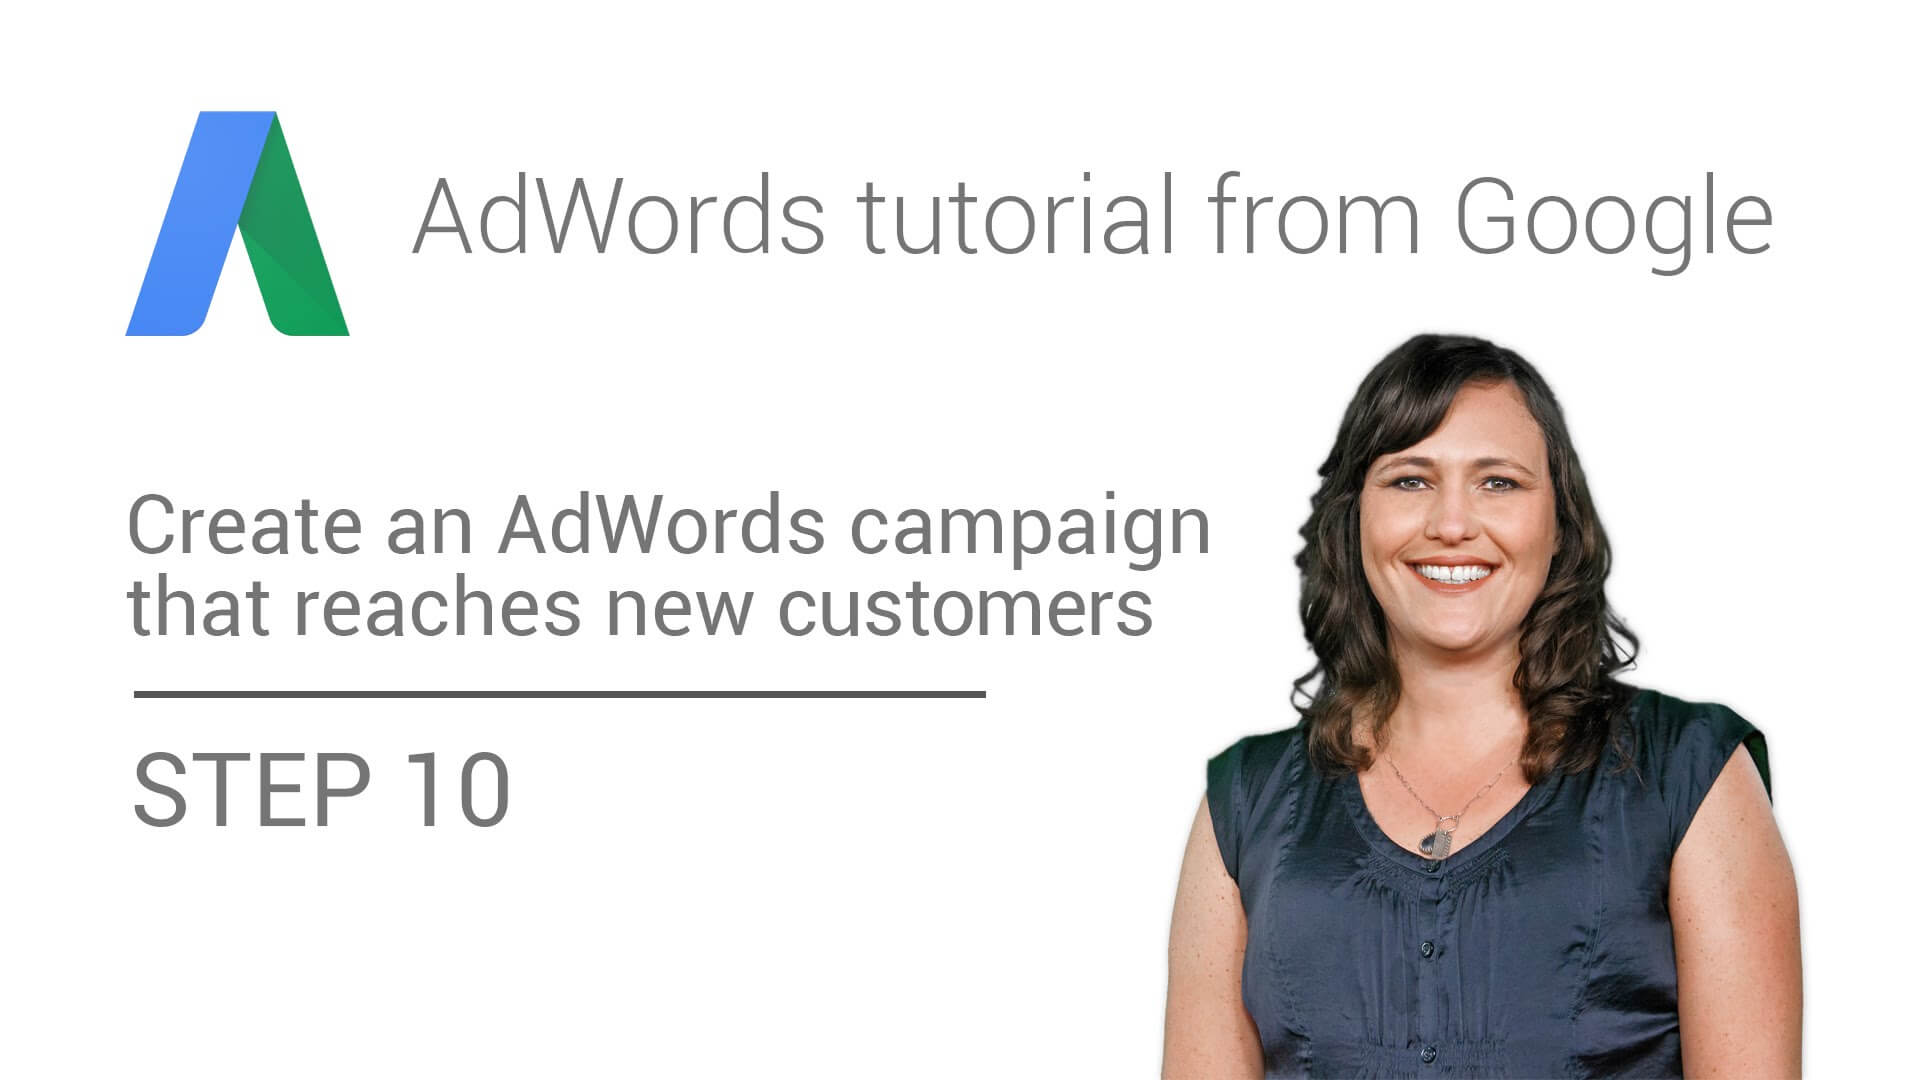 Step 11: Fine-tune your keywords to match your goals and budget